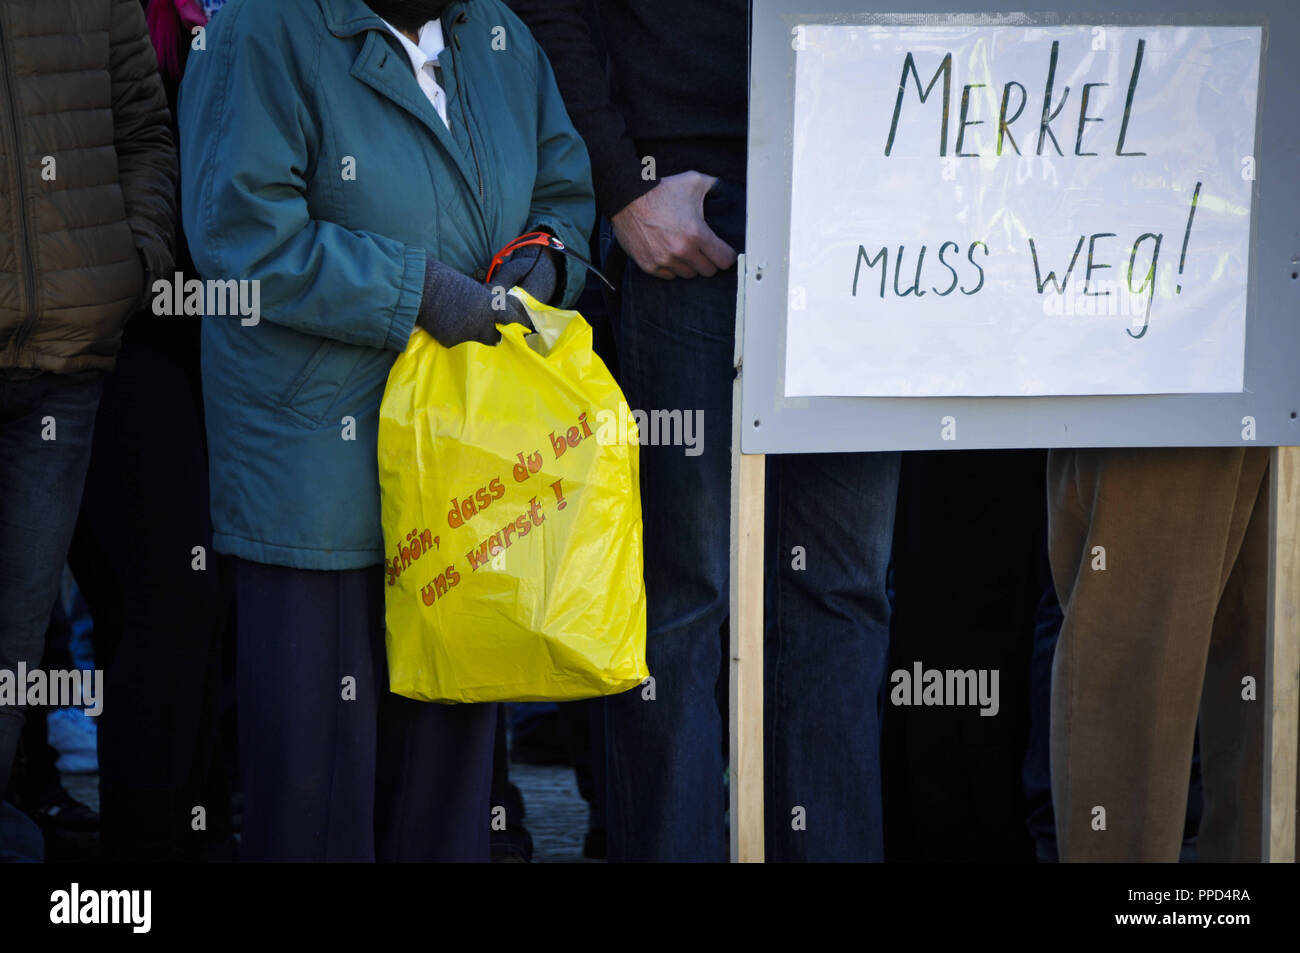 Russian Germans gather in the town square of Traunreut to demonstrate against the refugee policies of Angela Merkel, the Islam and the alleged lying press. In the picture you can see the slogan 'Nice that you were with us' on a shopping bag, next to banners with the demand 'Merkel must go'. - Stock Image